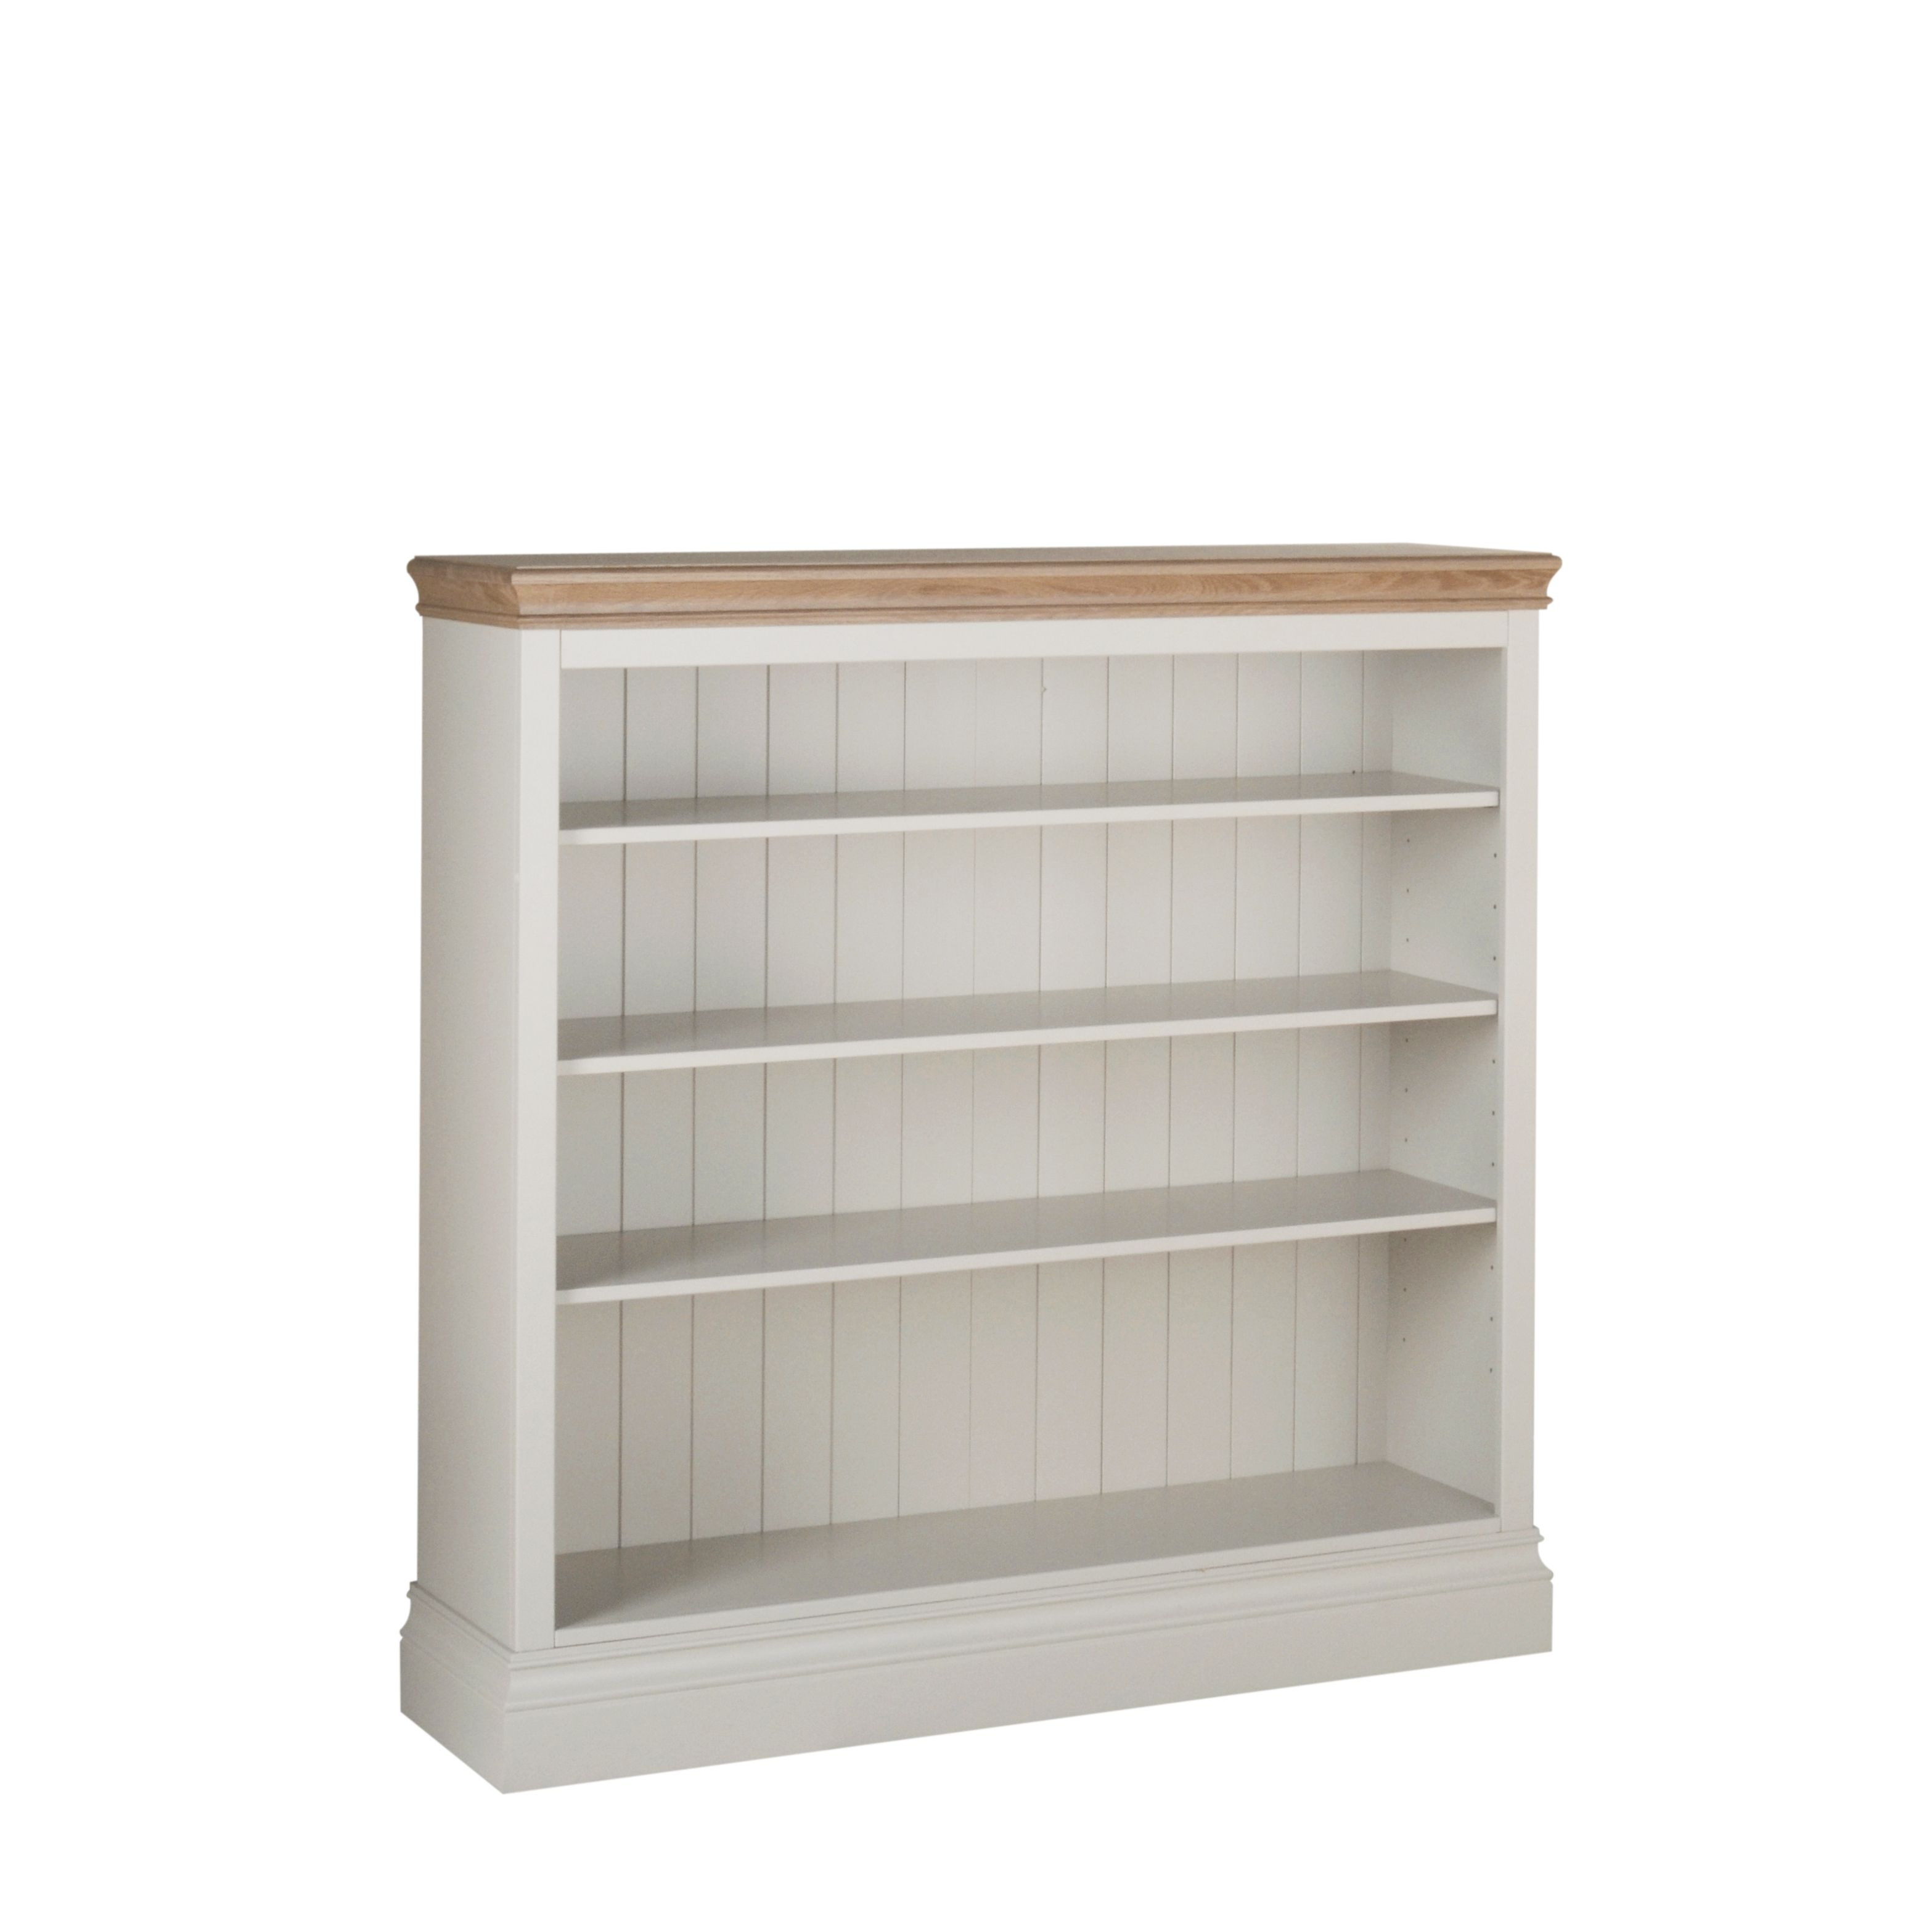 Lundy 4 Foot Wide Bookcase LK70